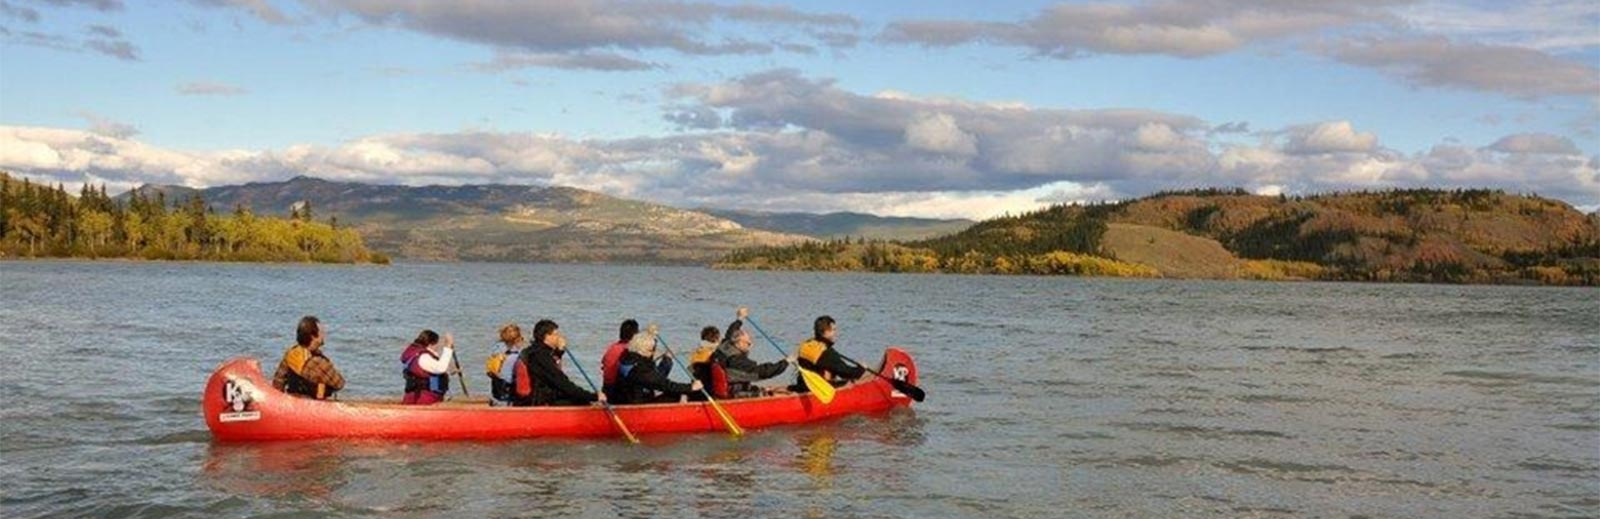 Yukon River Guided Day Trips